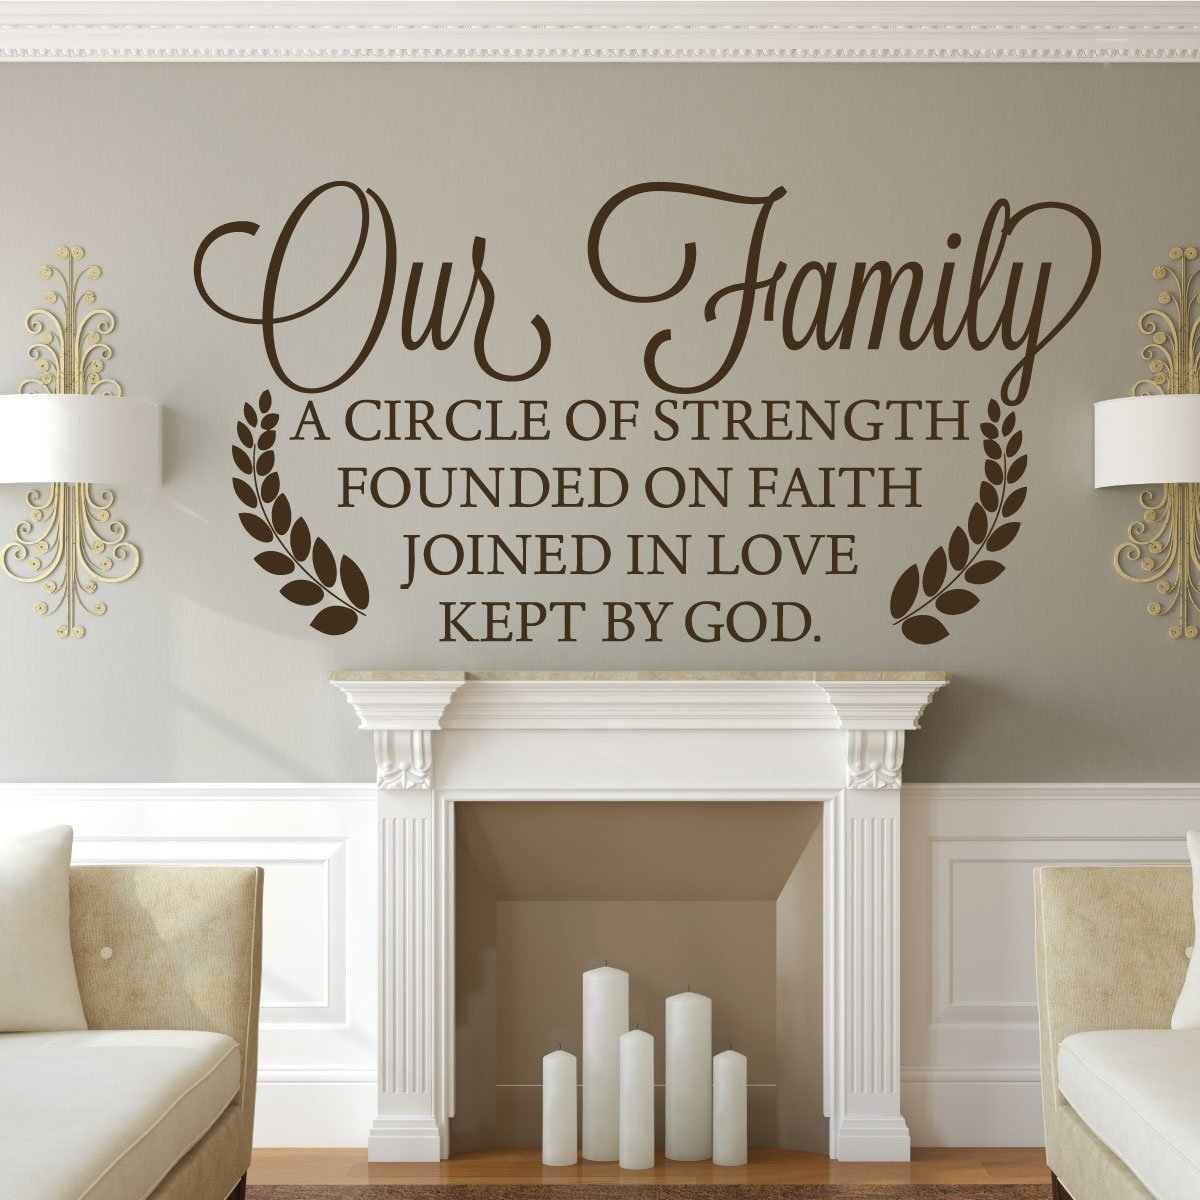 Family Wall Decor - Our Family A Circle Of Strength Founded On Faith Joined In Love Kept By God